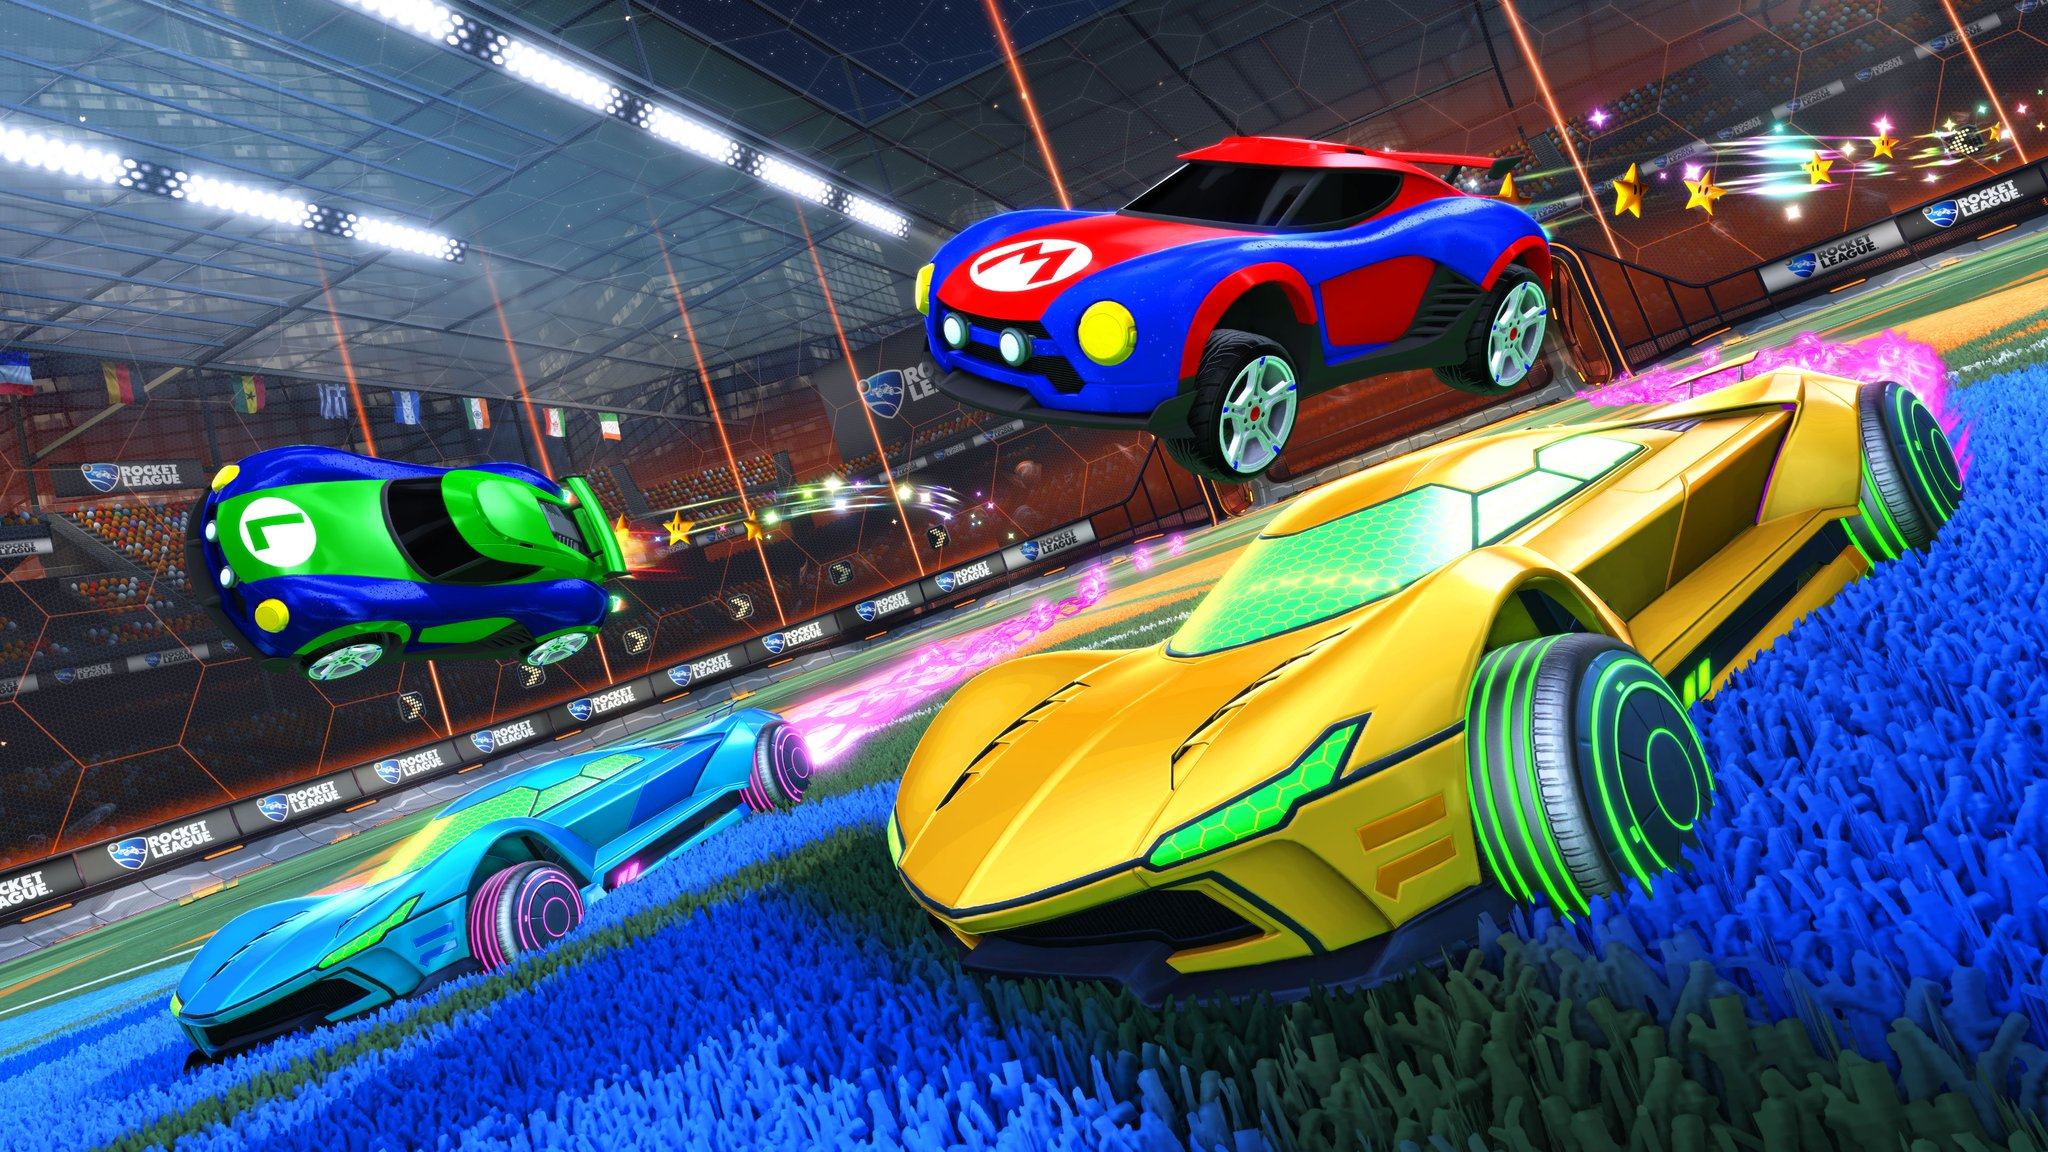 Future Cars 2018 Wallpapers Rocket League On Twitter Quot Rlonswitch Drops Worldwide